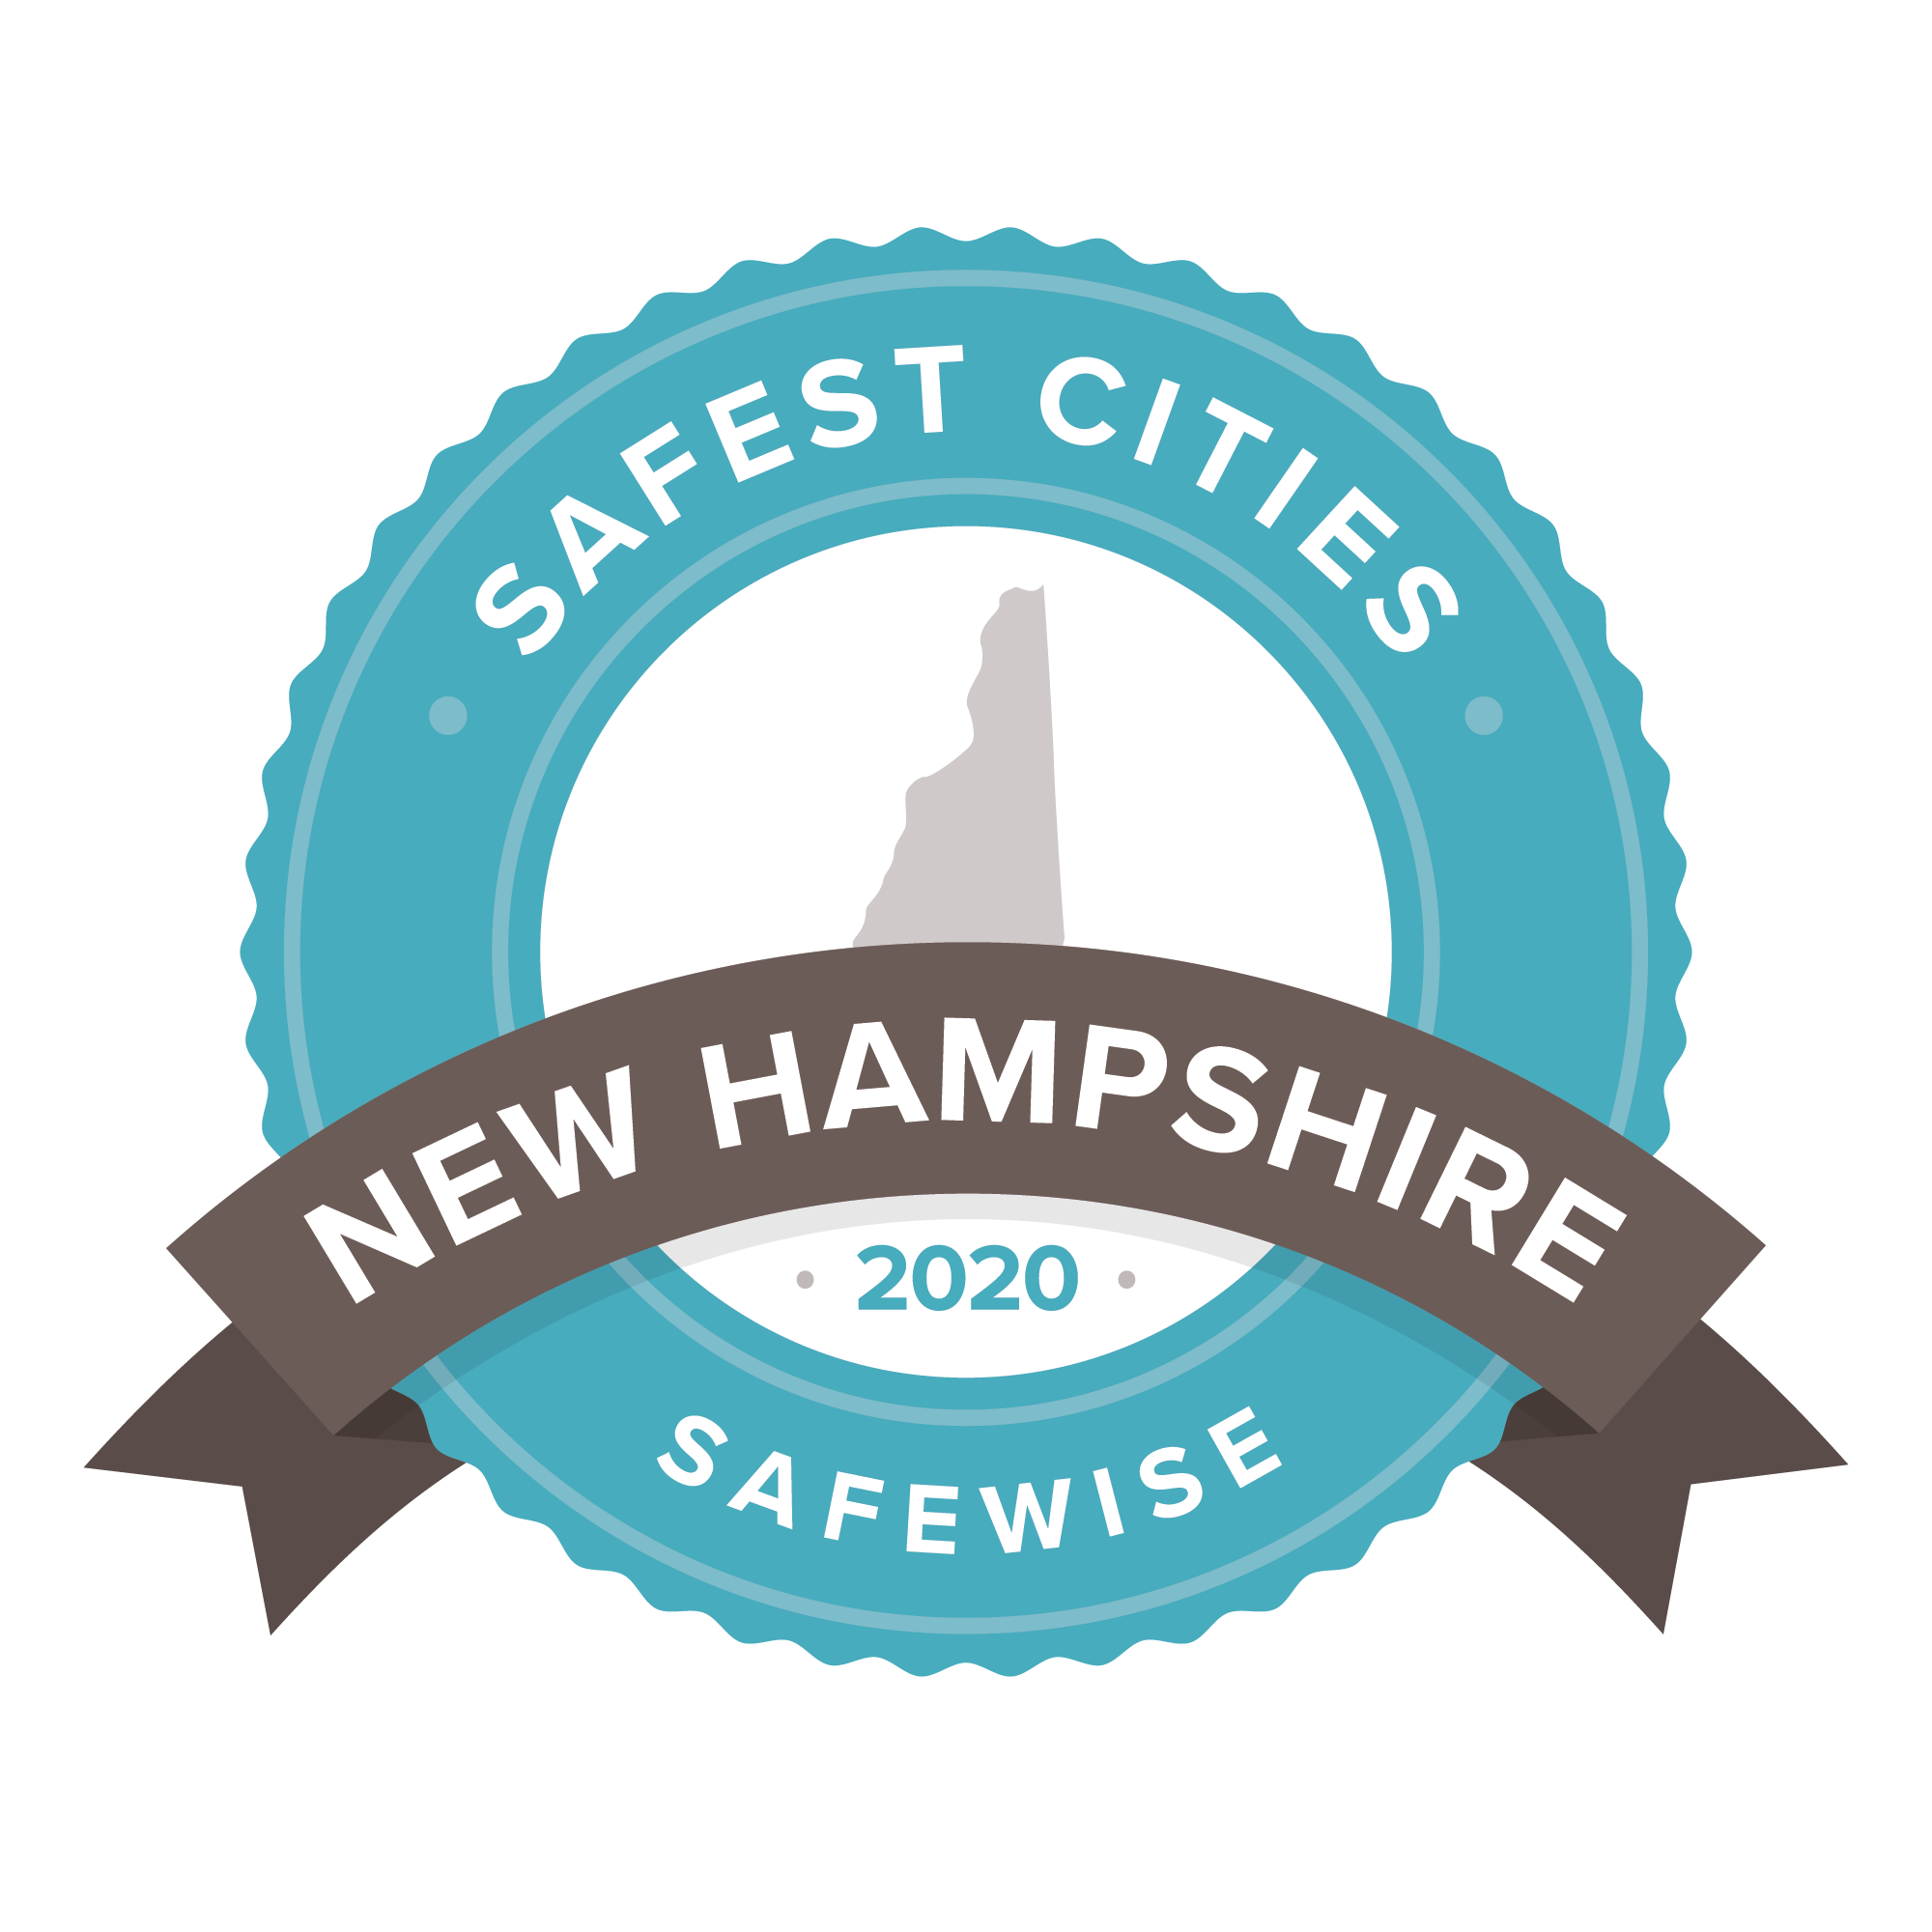 New Hampshire safest cities badge